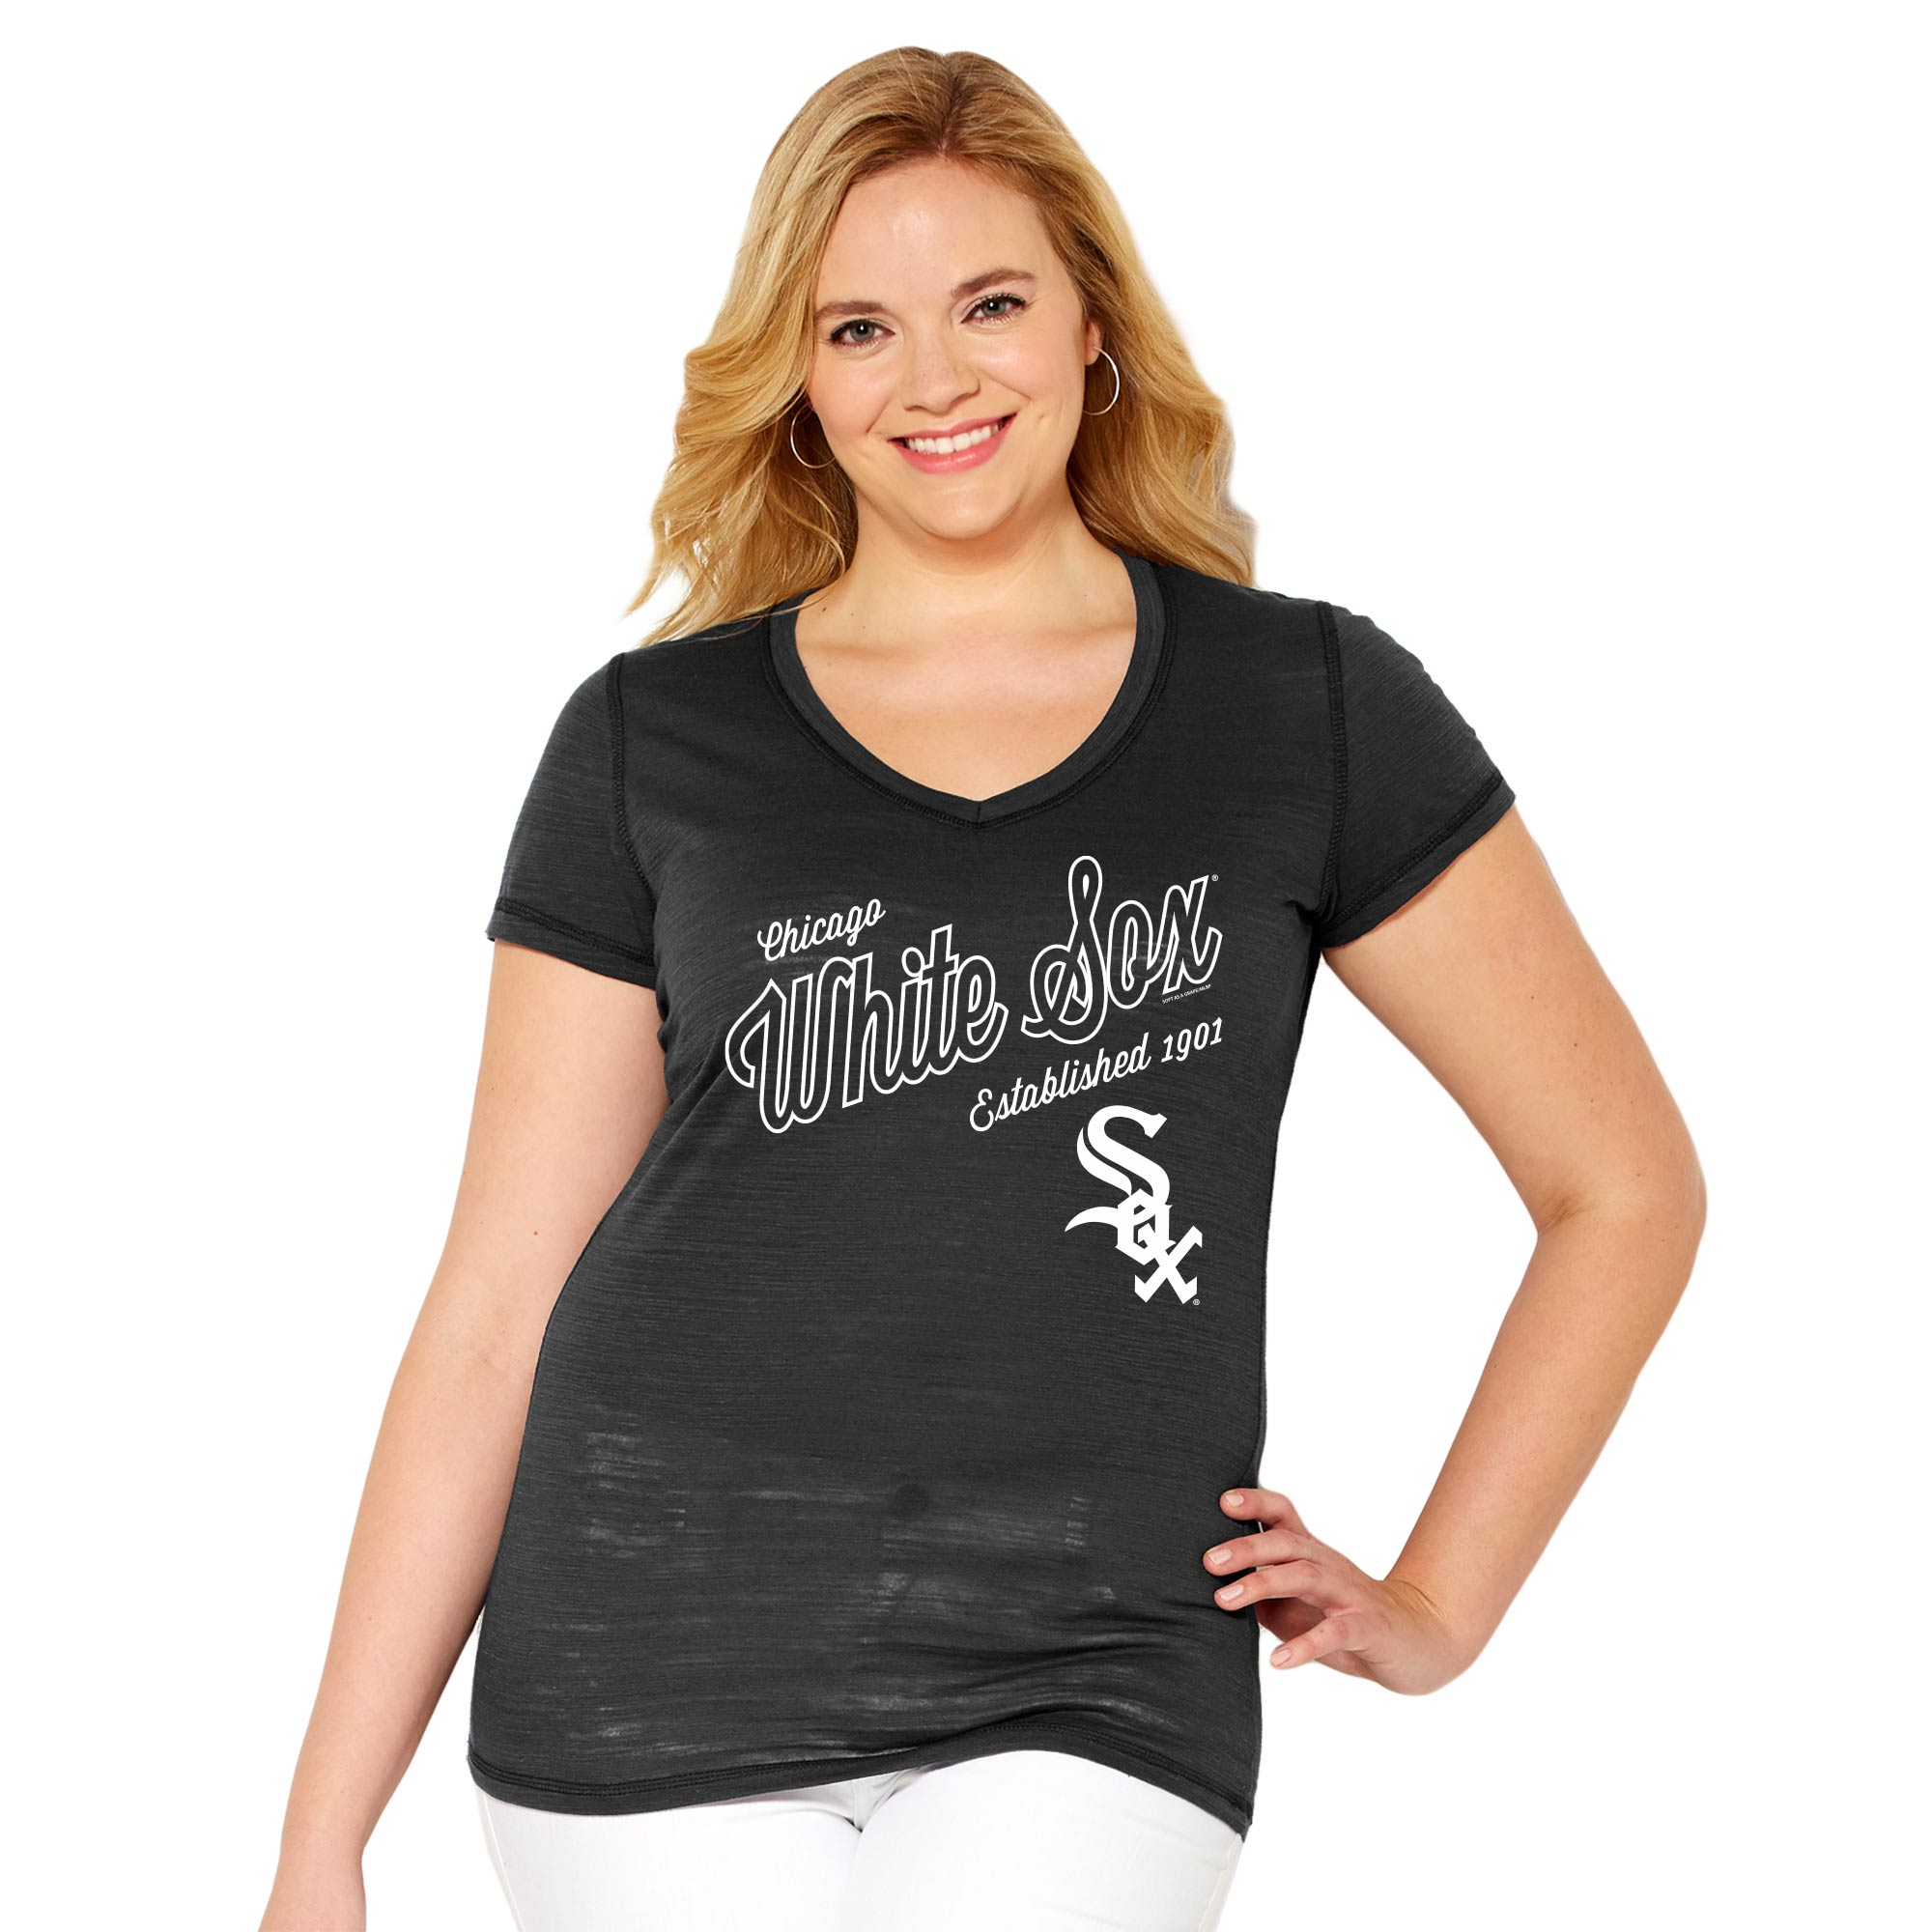 Chicago White Sox Soft As A Grape Women's Plus Size Fastball V-Neck T-Shirt - Black